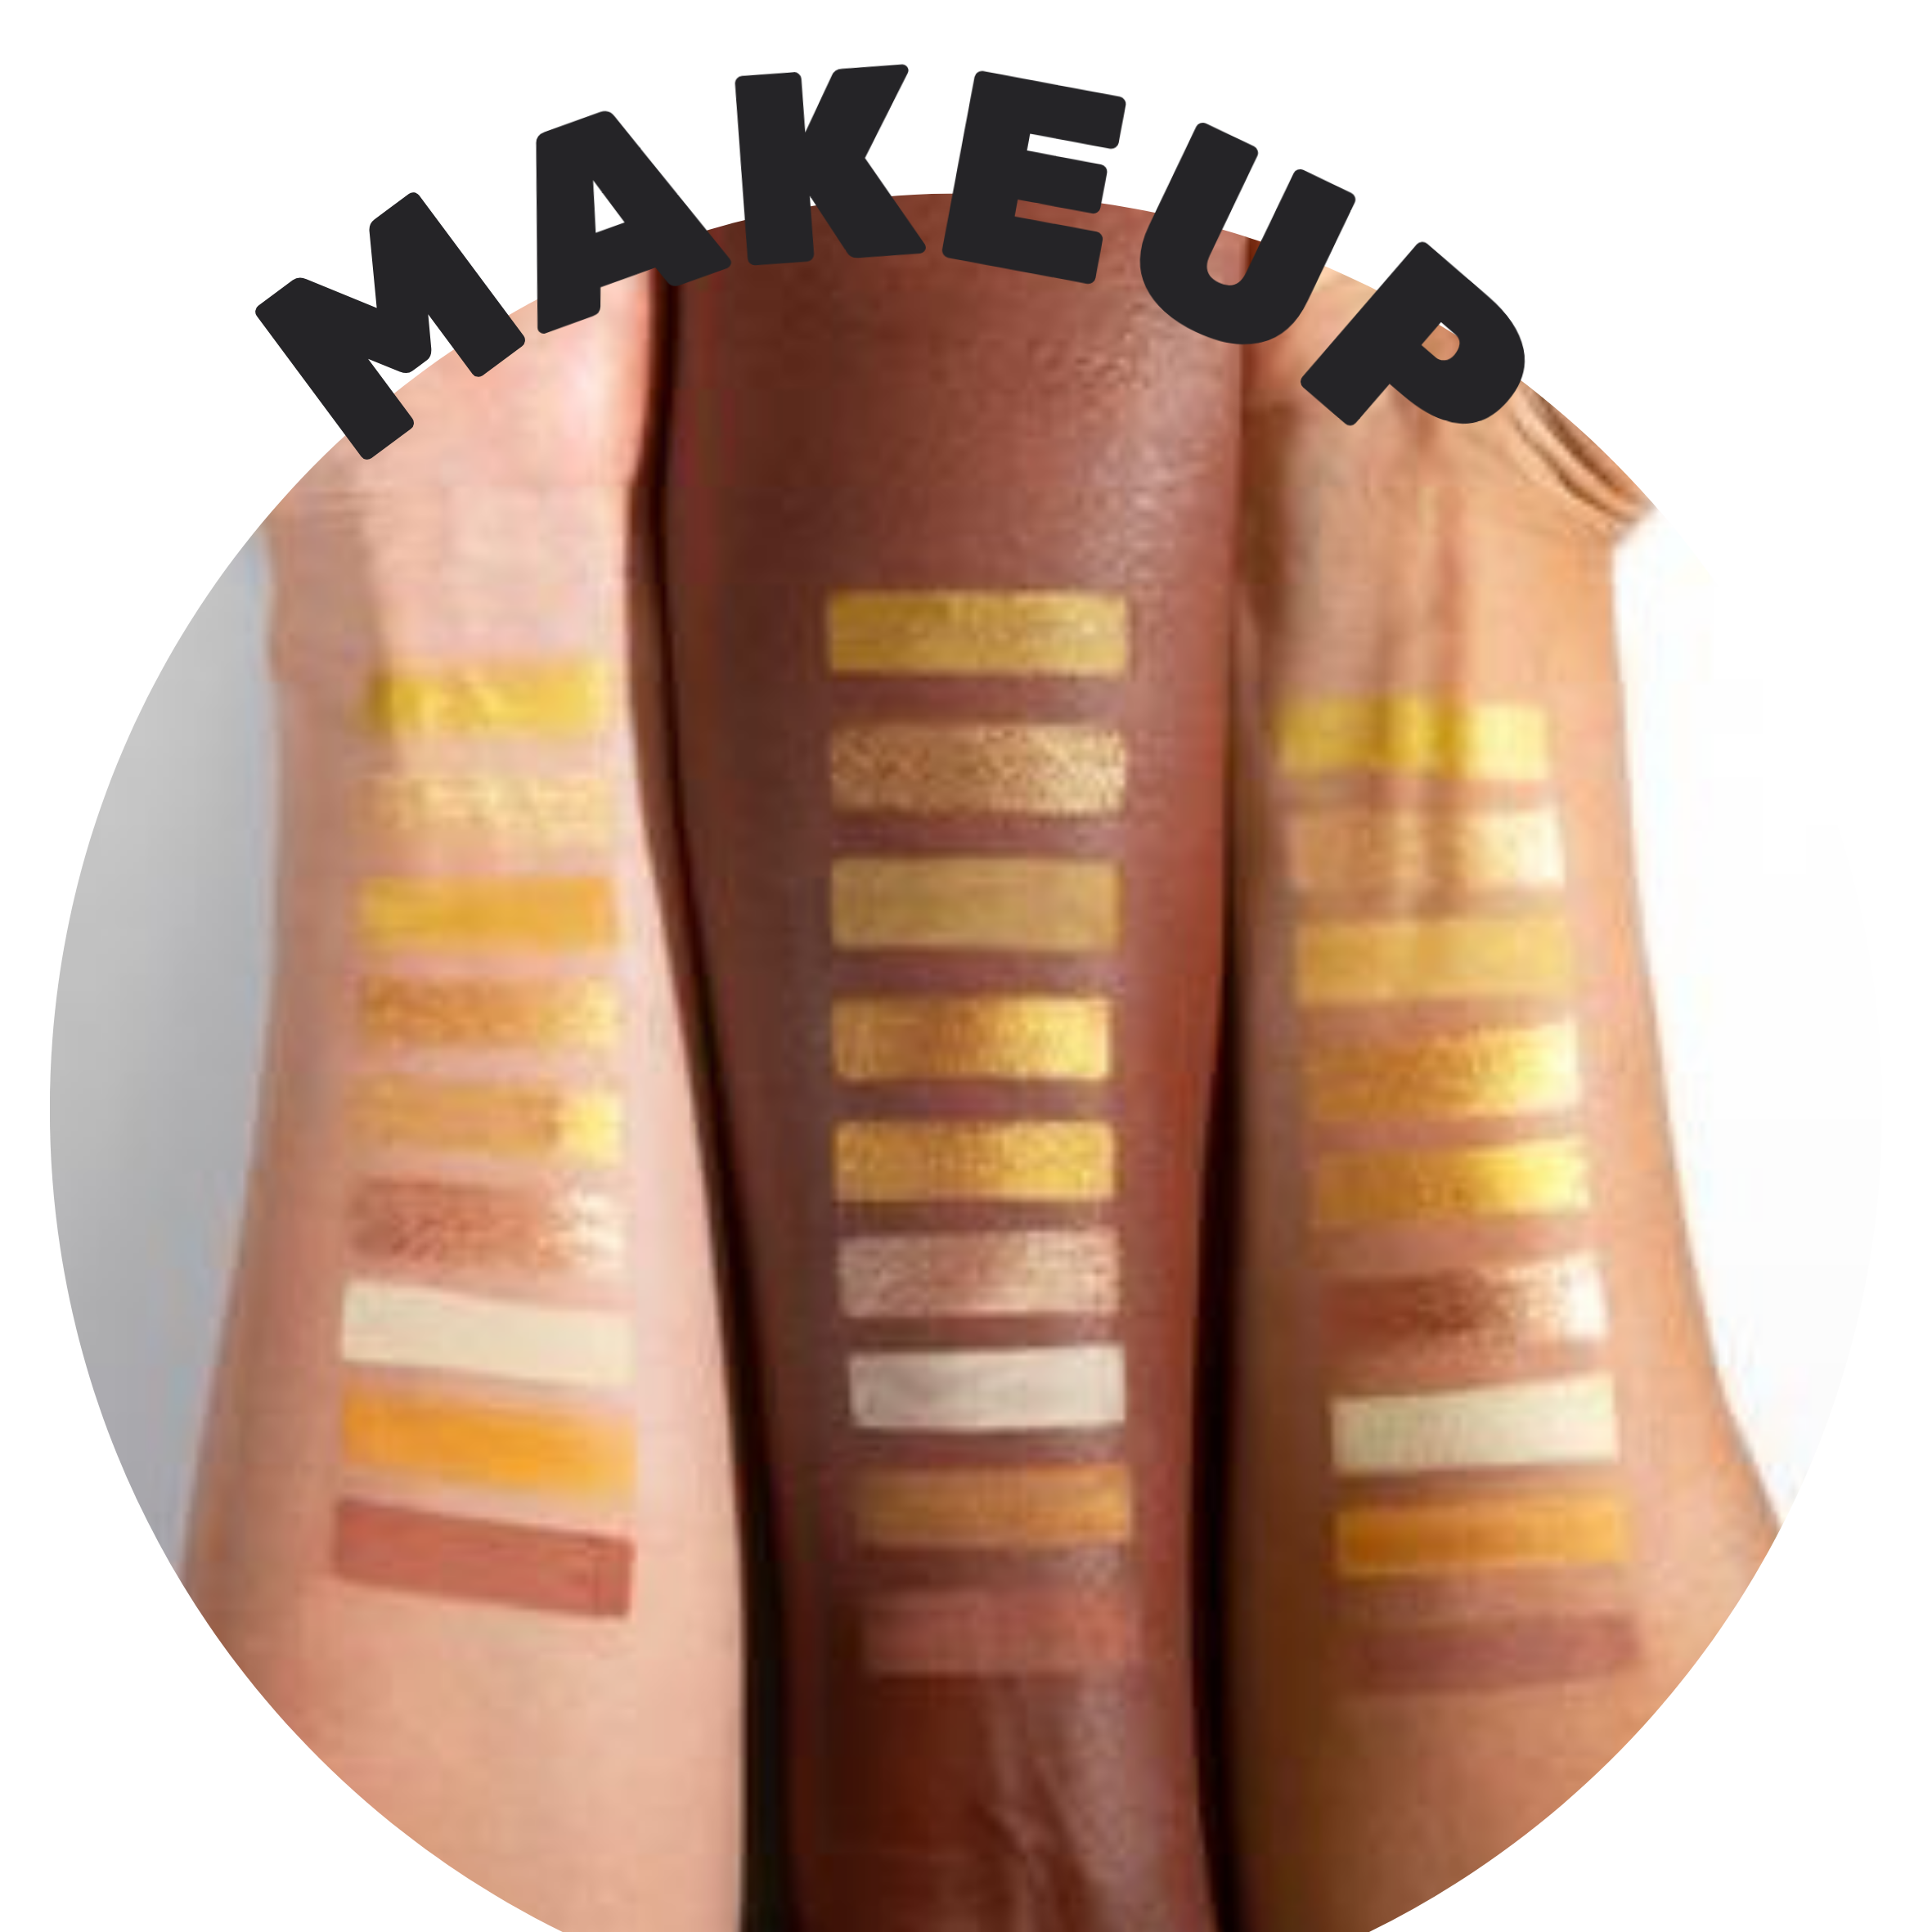 FOUNDATION, CONCEALER, EYE SHADOW, LIP STICK, LIPGLOSS MAKEUP AT AN AFFORDABLE PRICE